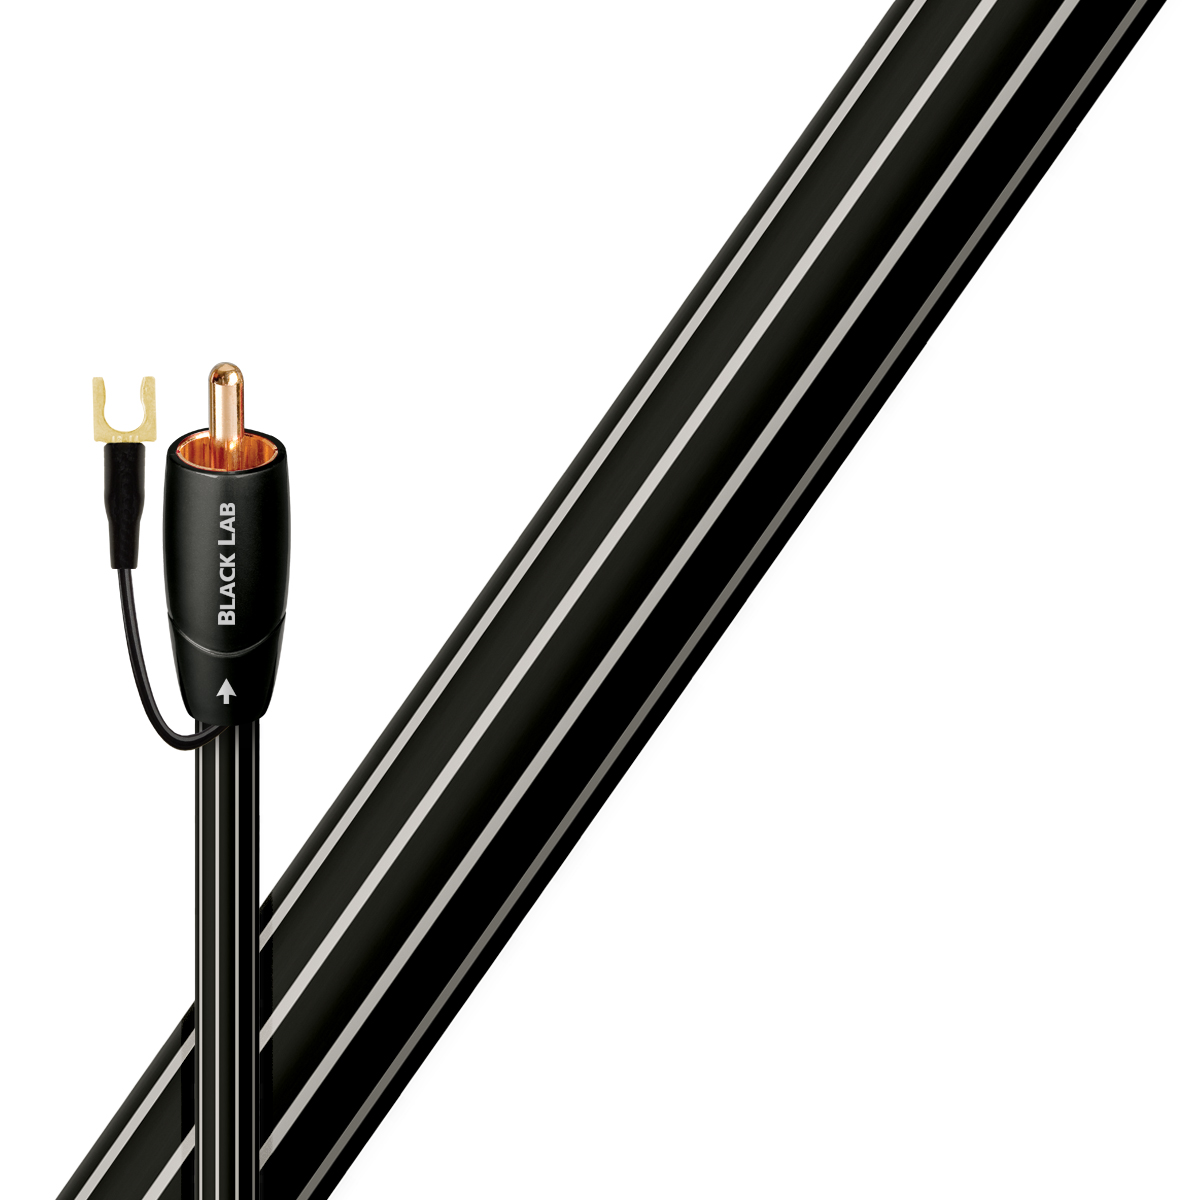 AudioQuest Evergreen 3.5mm Male to 3.5mm Male Cable 3m 9.84 ft.